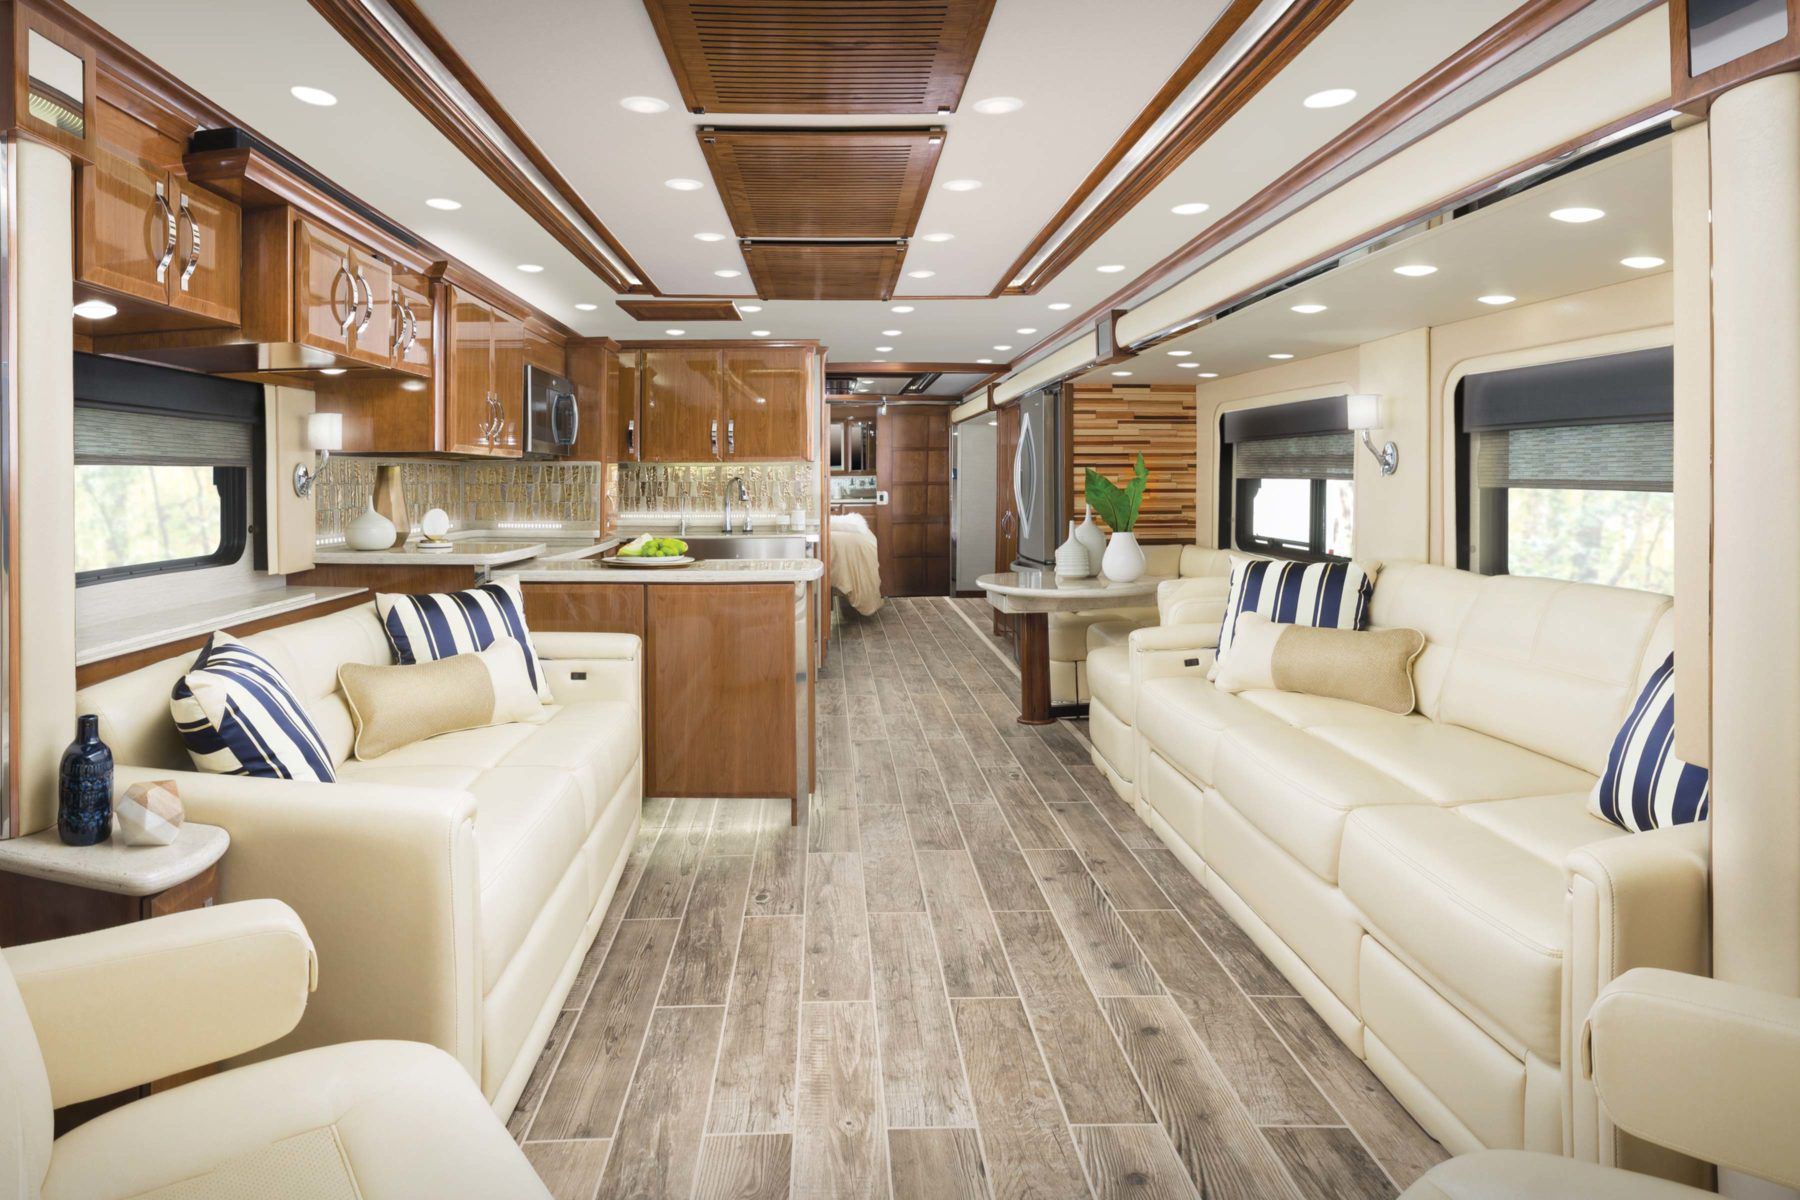 5 Of The Most Expensive Rvs In The World